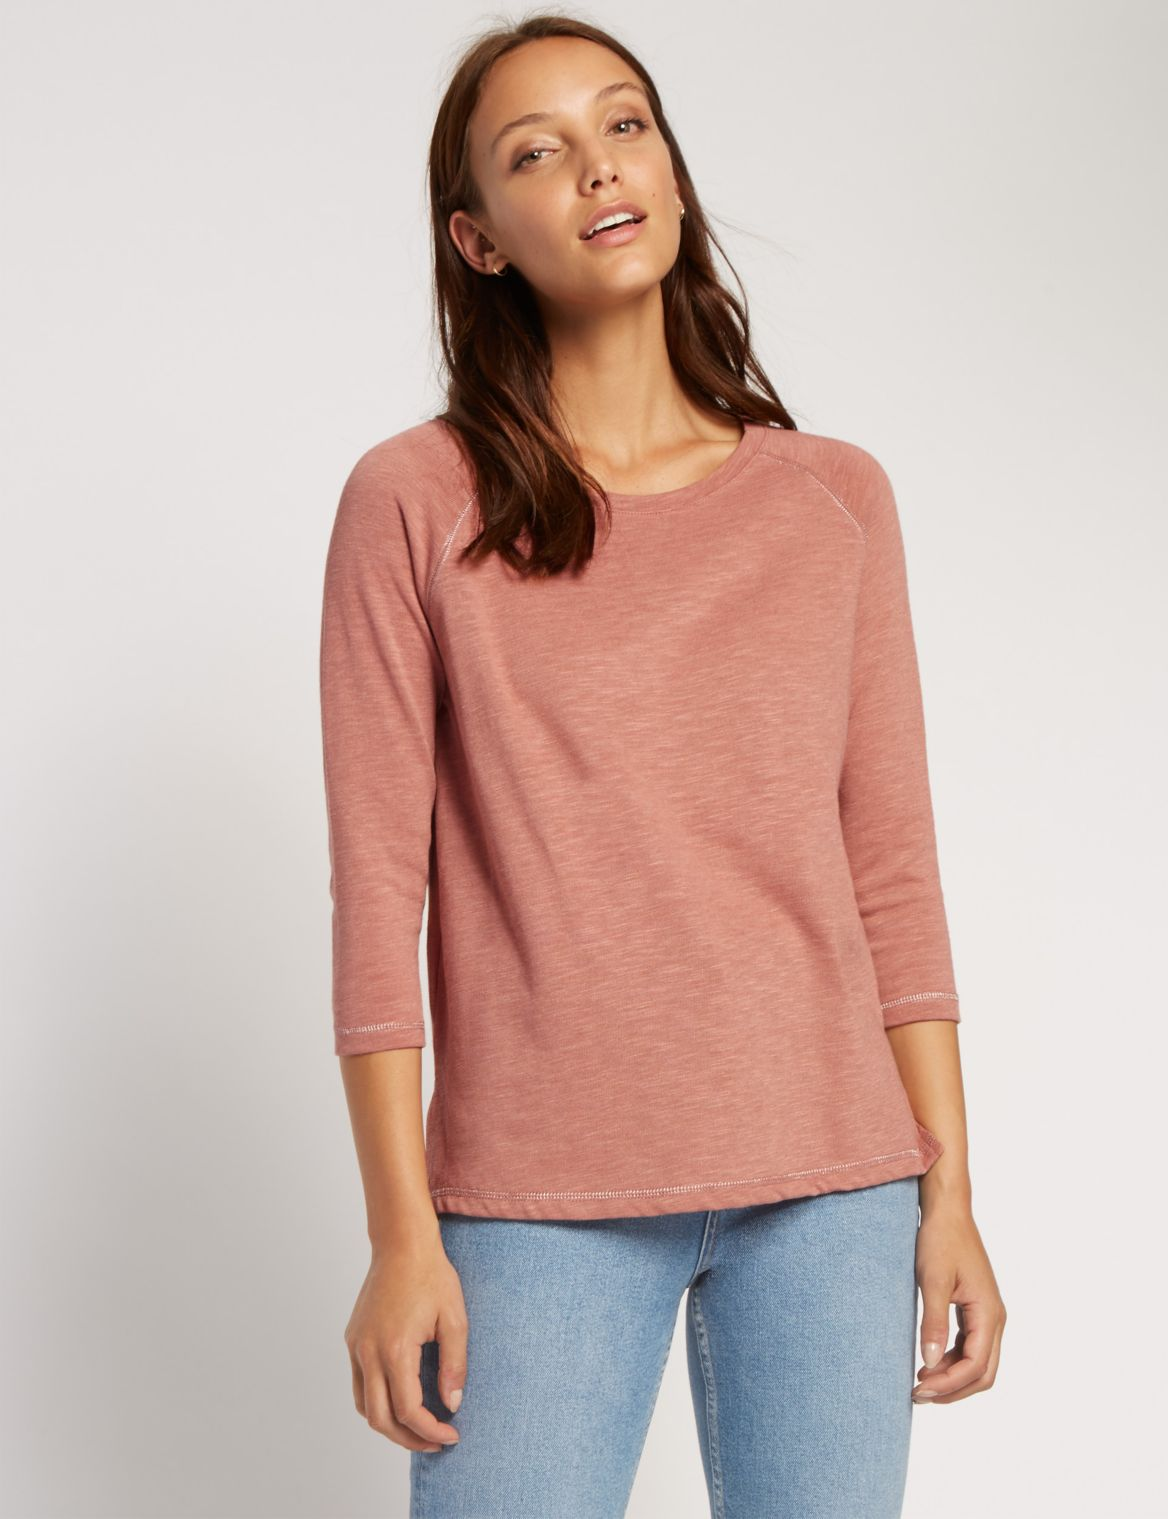 3/4 Sleeve Raglan T-Shirt dark rose